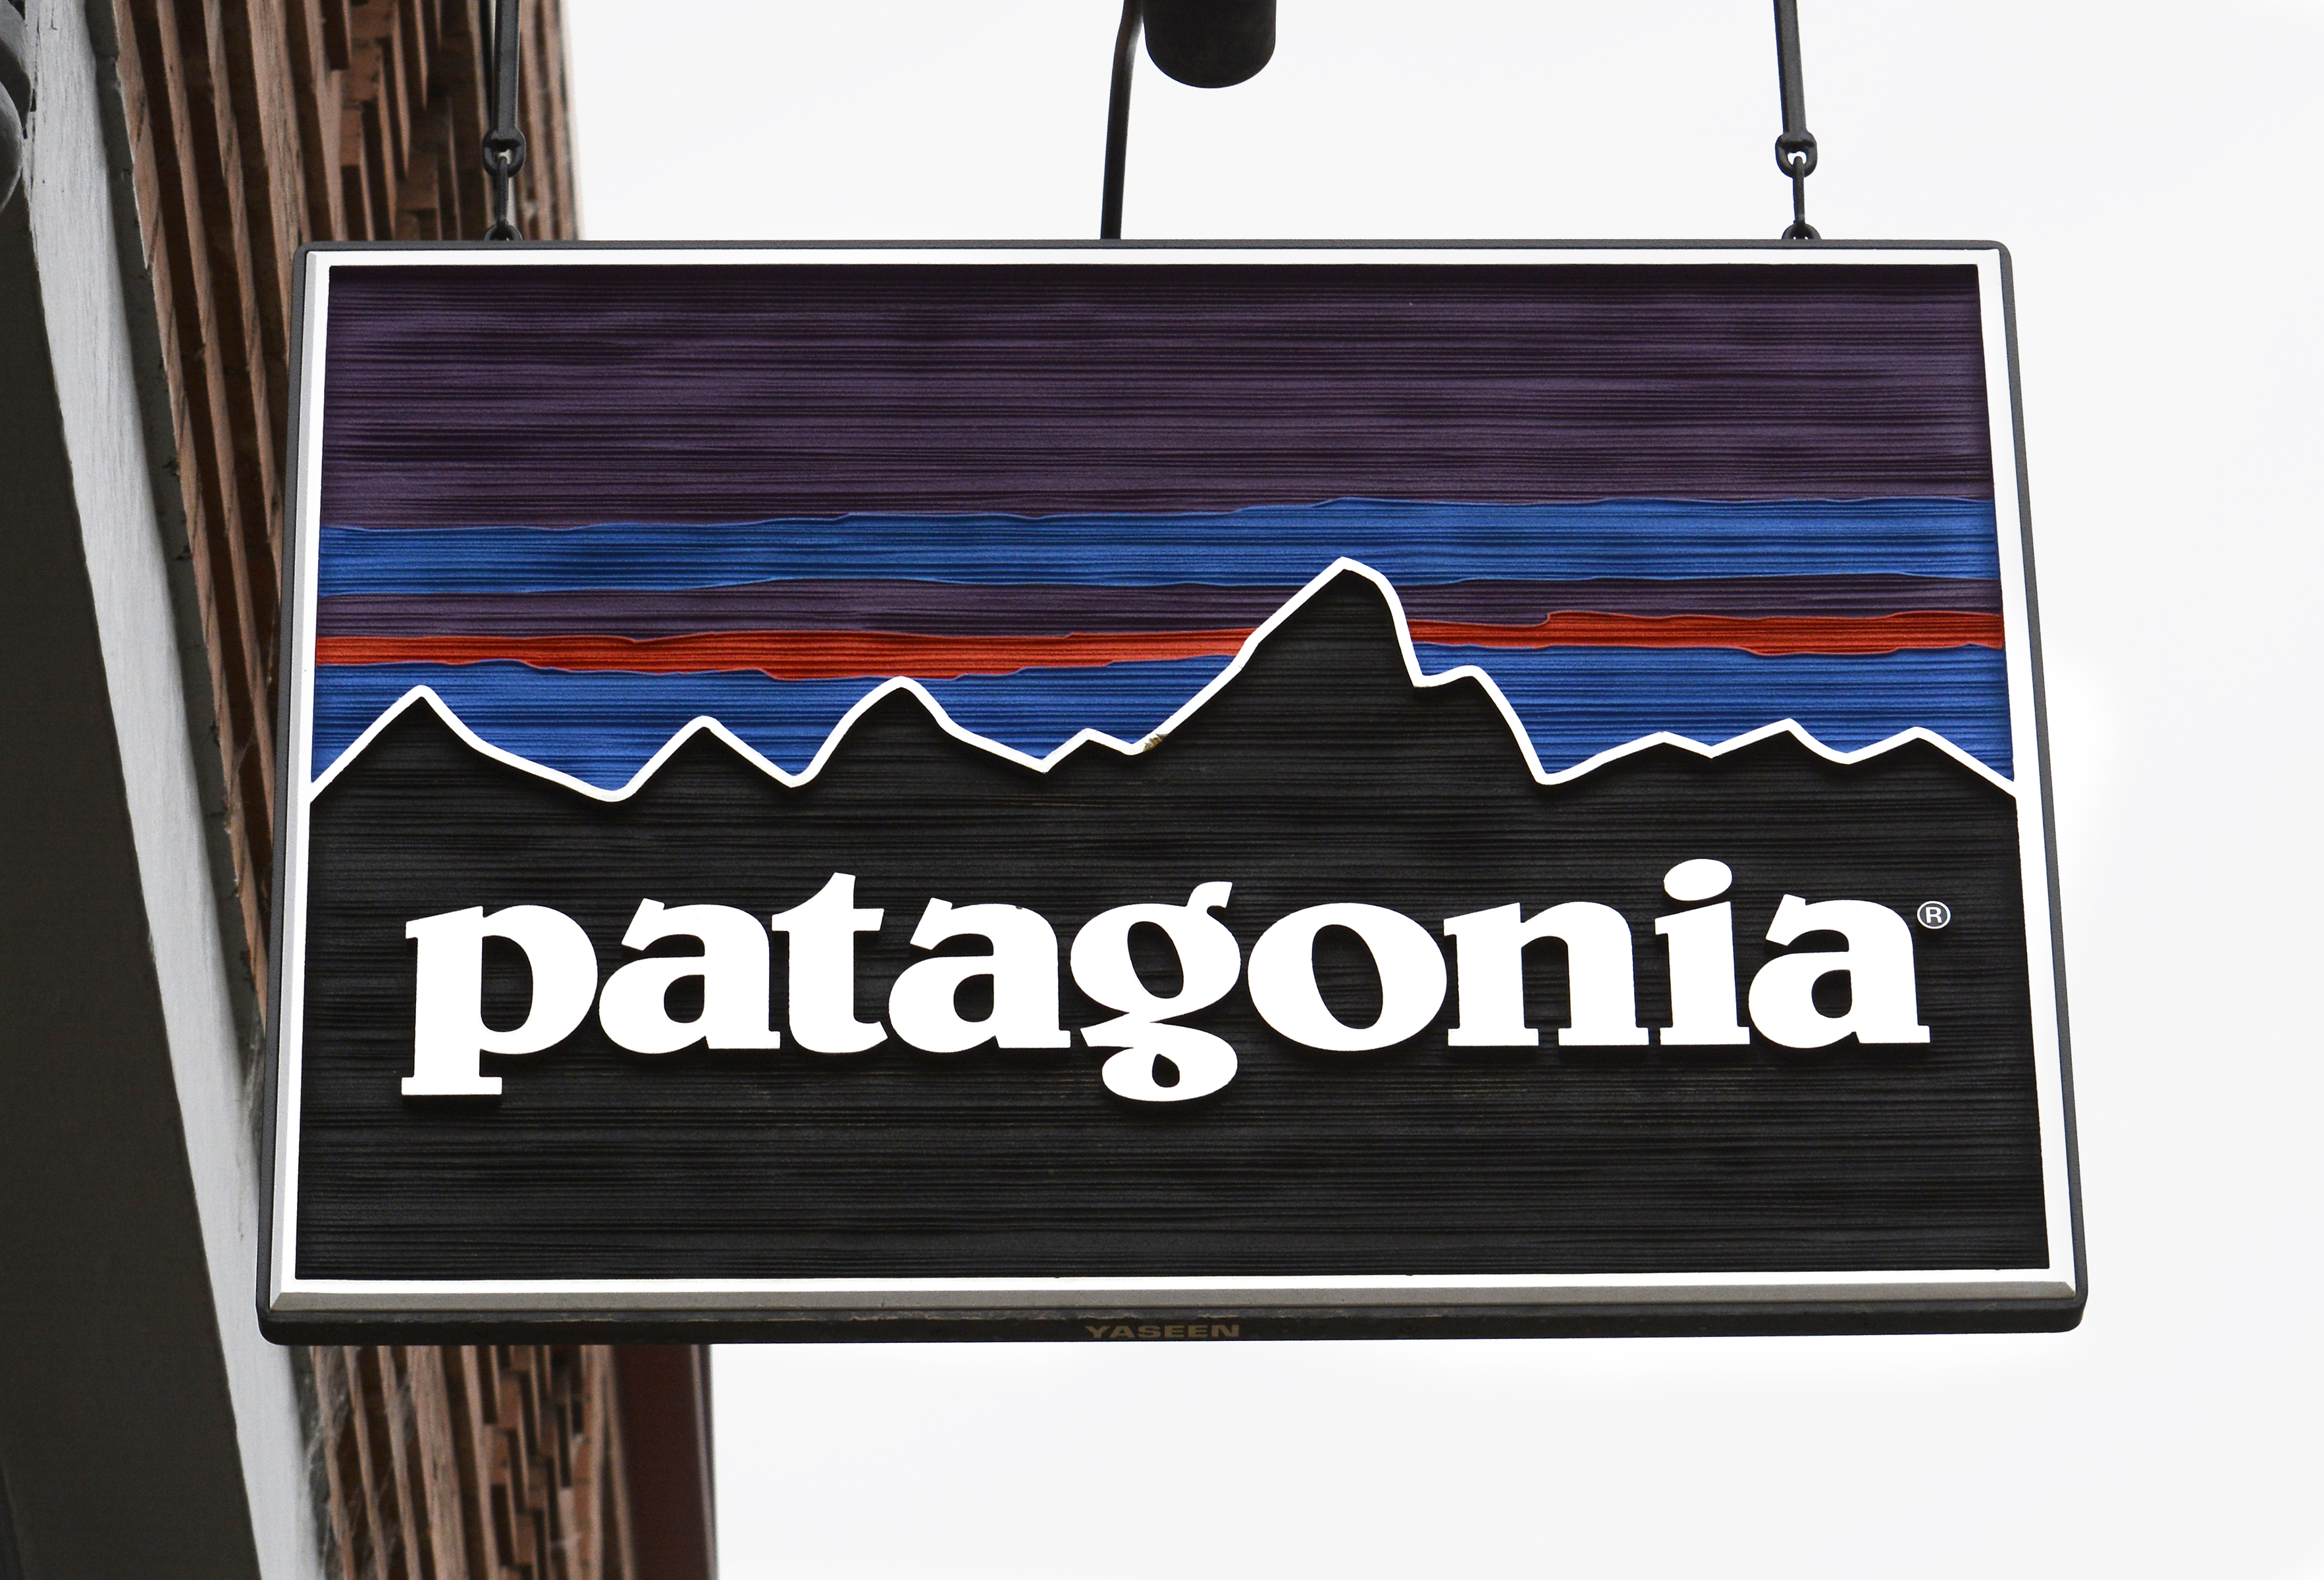 A Patagonia store is among the several shops catering to outdoor enthusiasts in Telluride, Colorado.